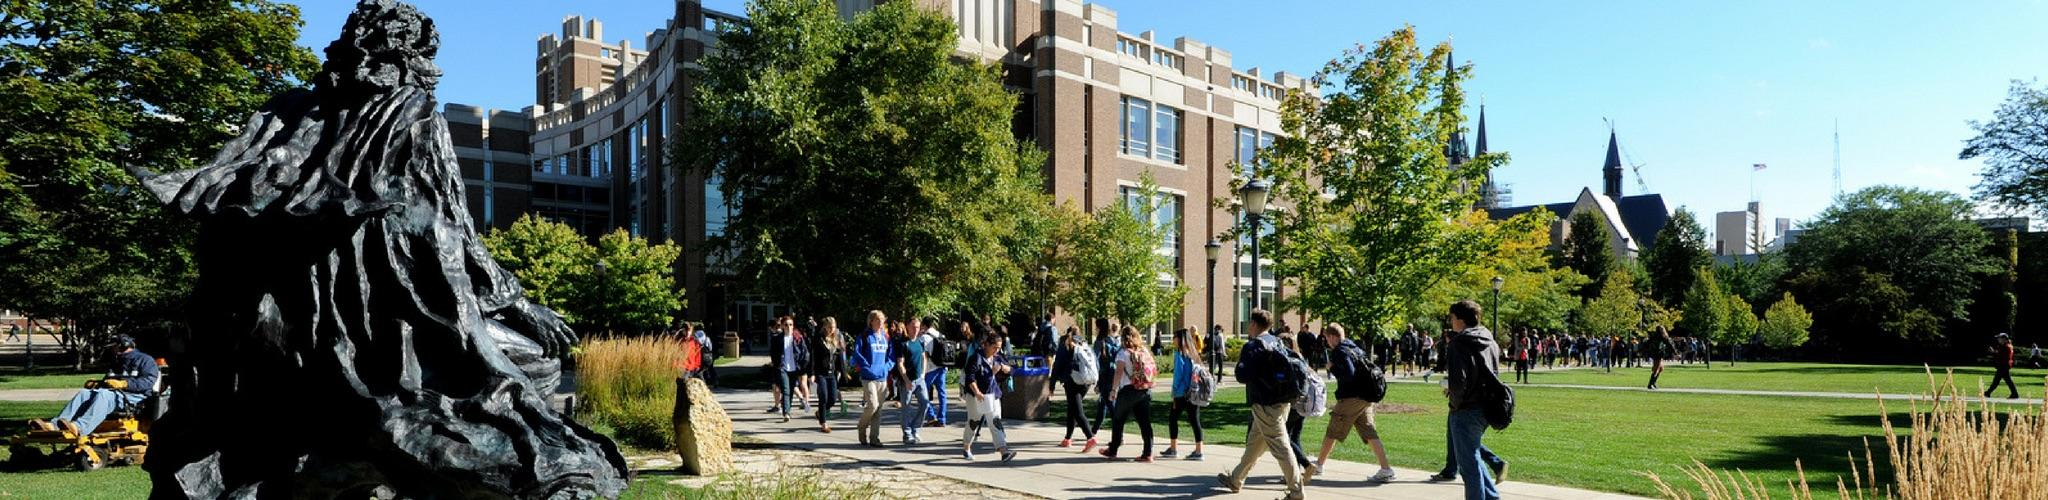 <a href=&#34;https://www.marquette.edu/oie/admitted-students/index.php&#34;&gt;Next steps to enroll and life at Marquette.</a&gt;